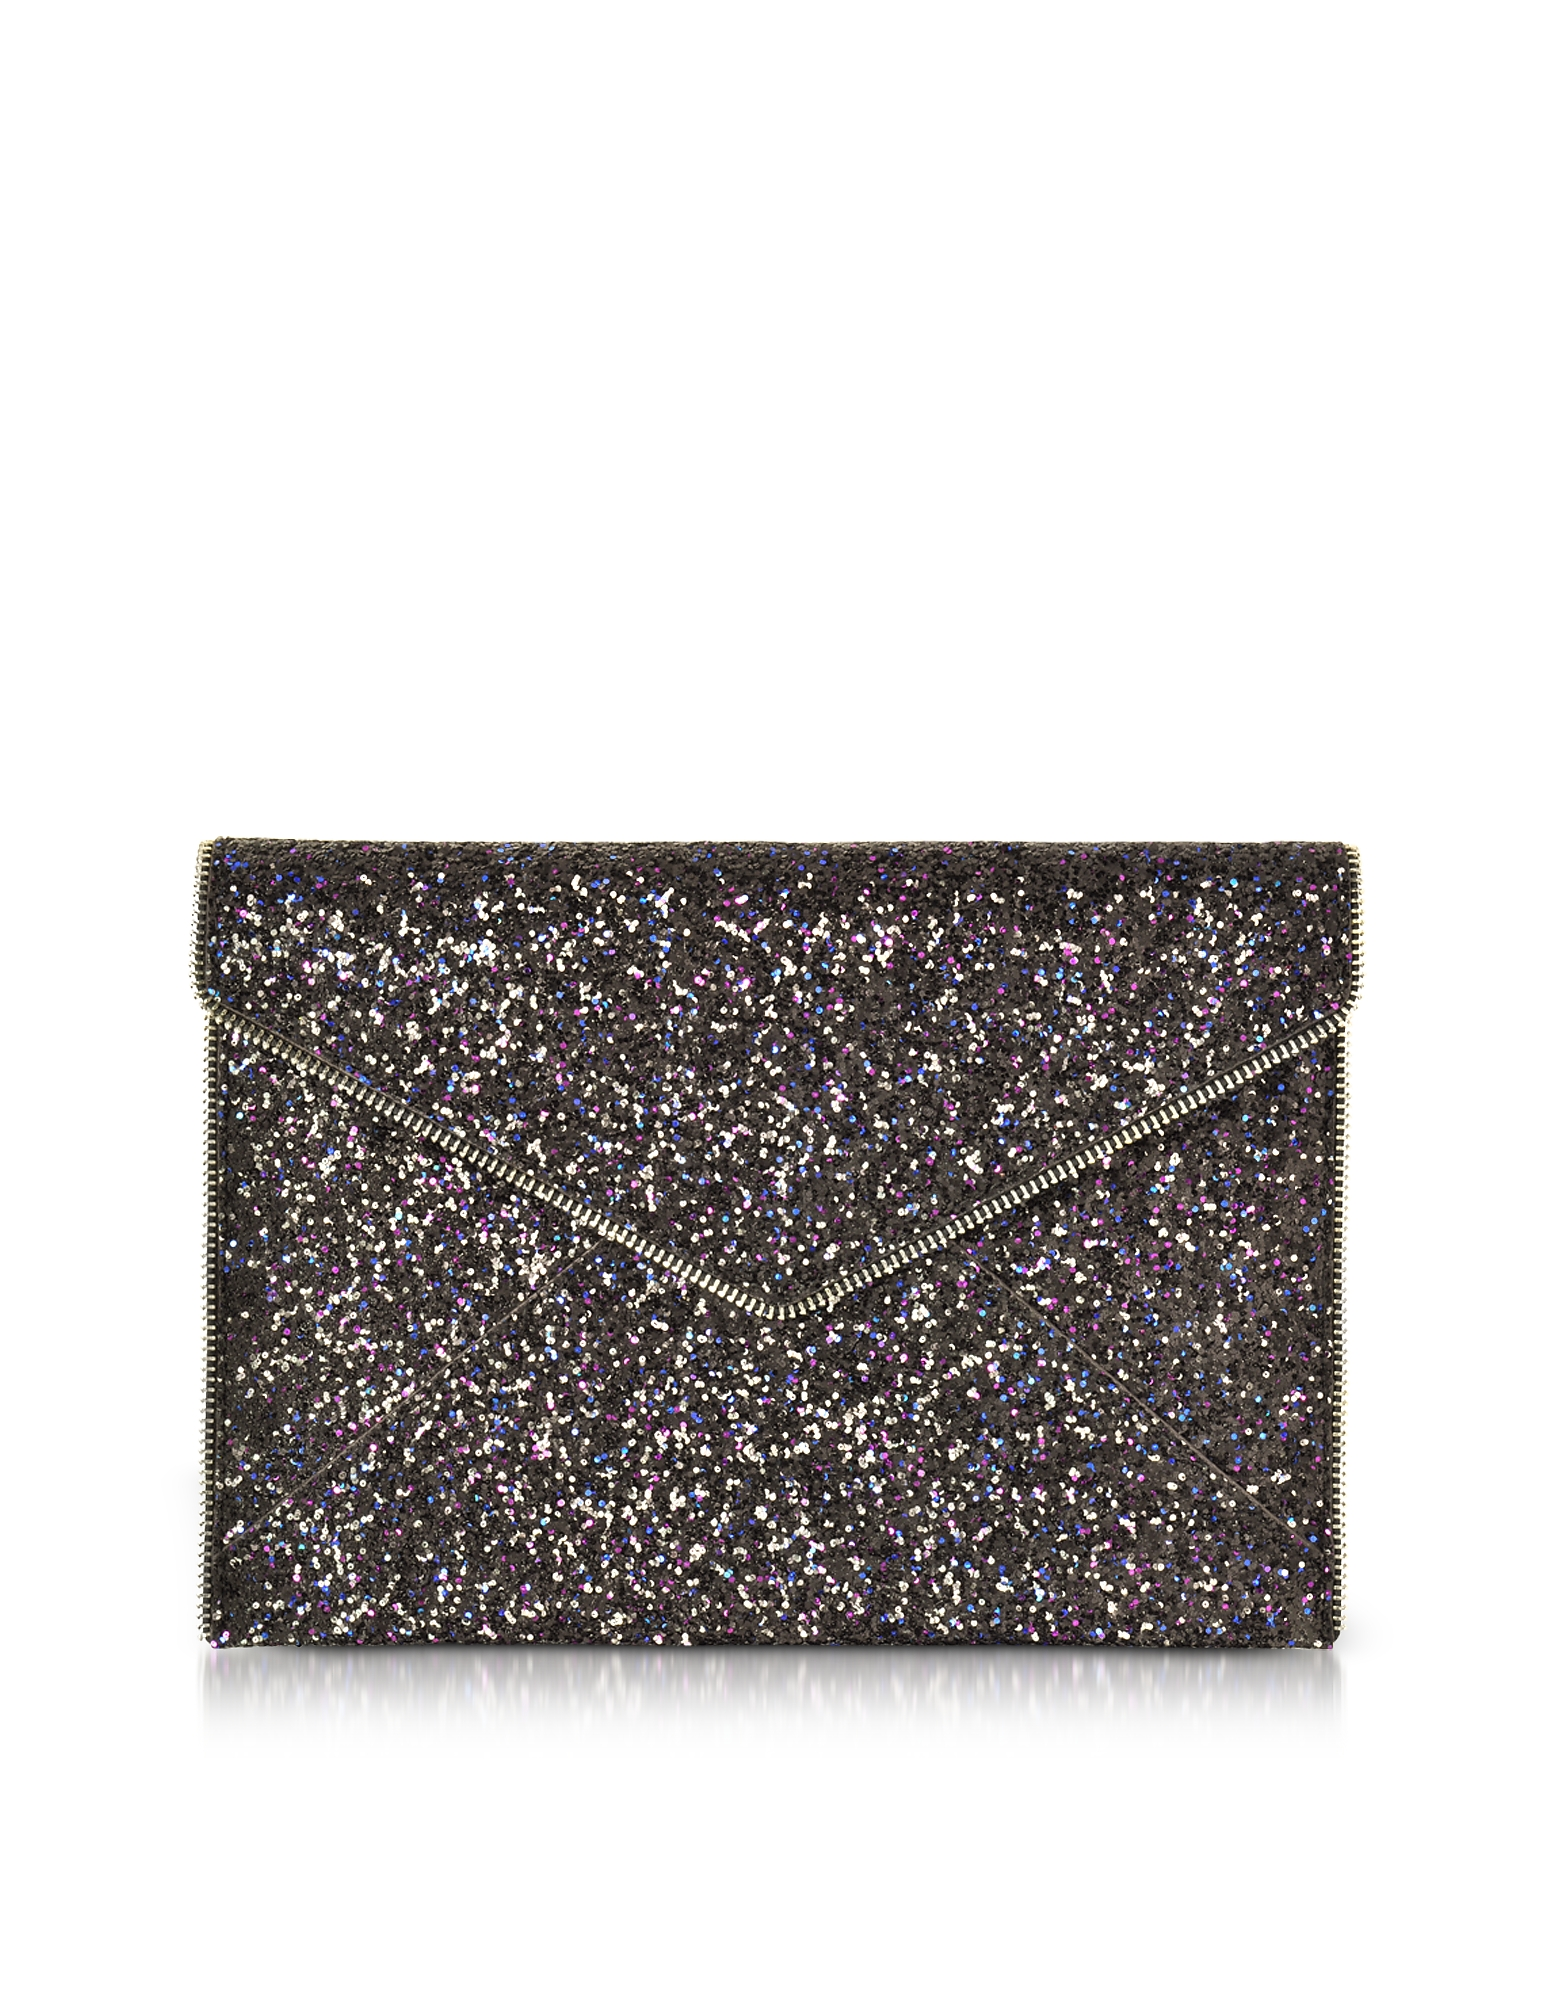 Rebecca Minkoff Handbags, Glitter Leo Envelope Clutch